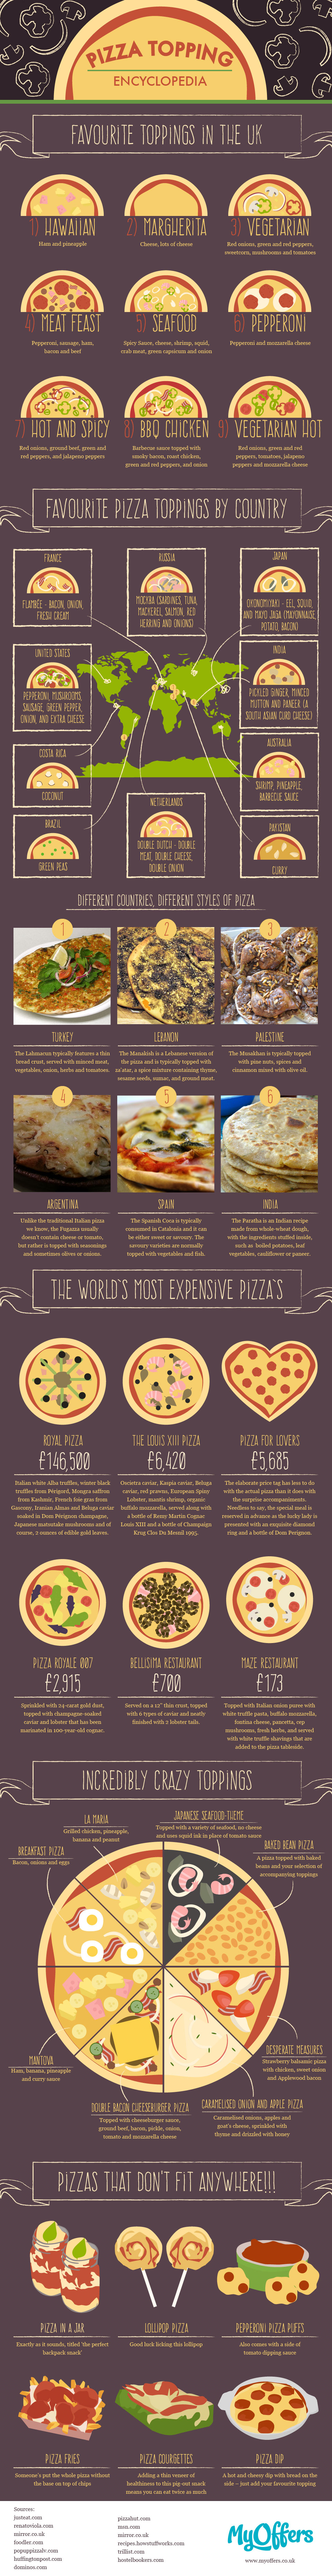 The Ultimate Pizza Topping Encyclopedia